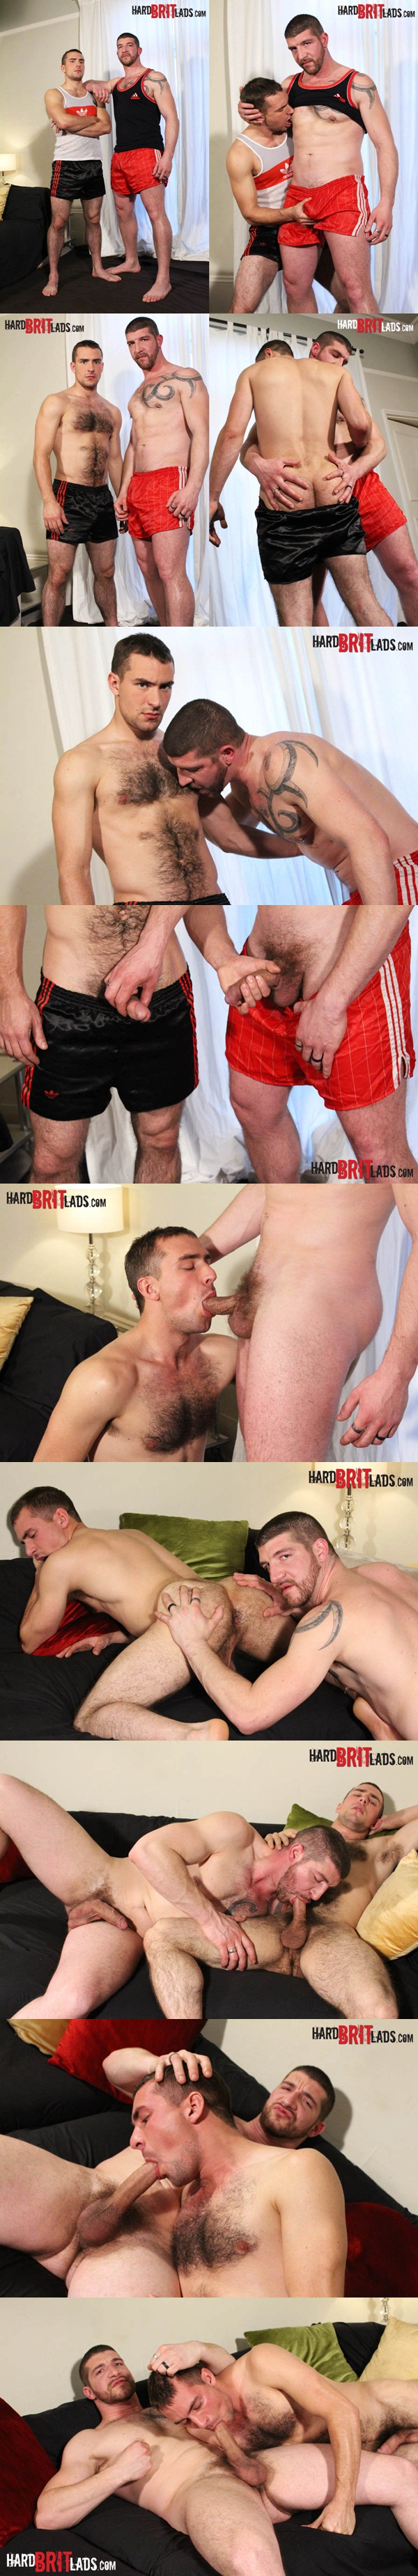 Manly rugged Jeff Stronger & handsome hairy Guy Rogers sucking, kissing, assplay and jerking off at Hardbritlads 01